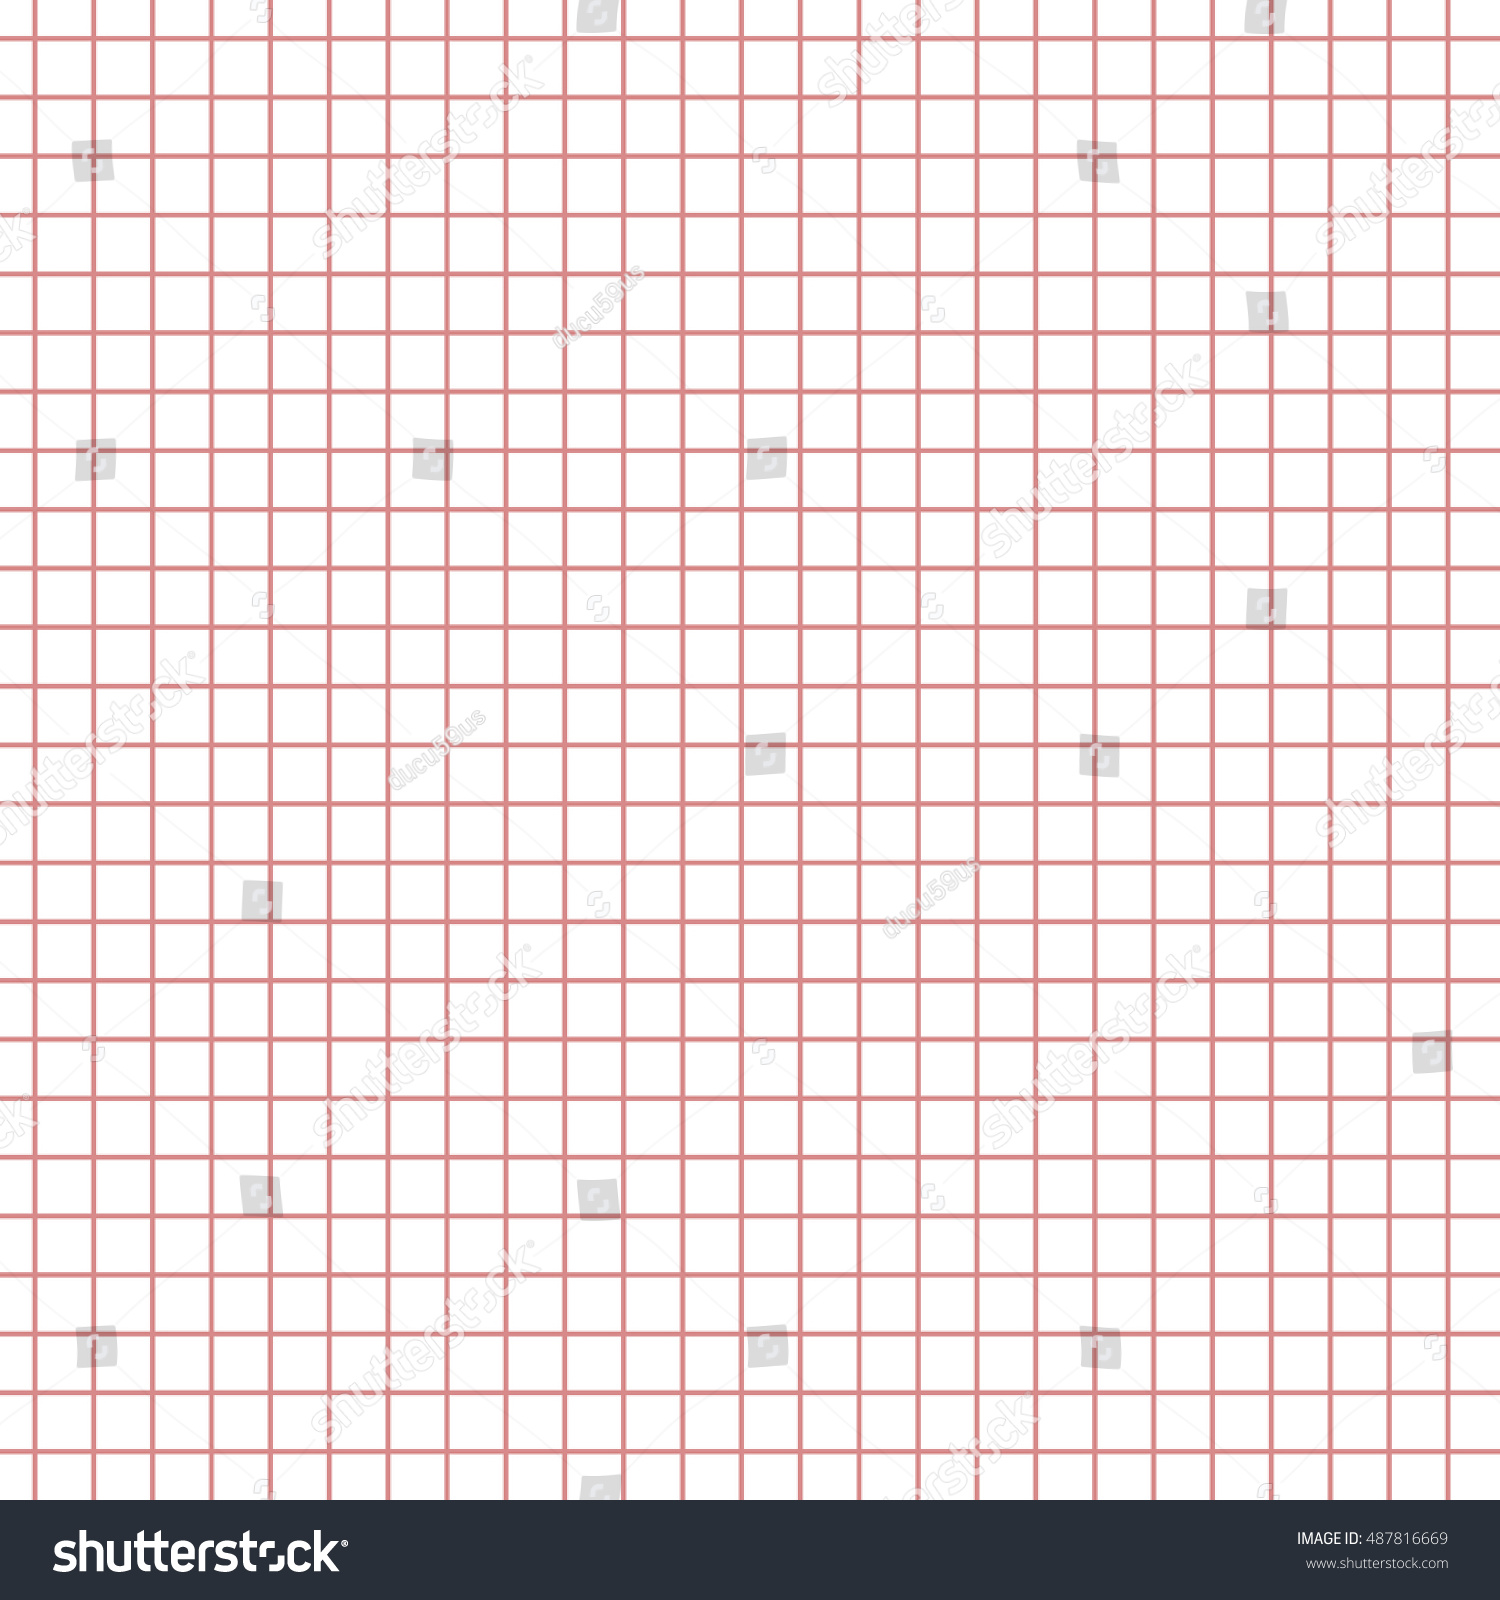 Math Paper Red Squares Texture Background Stock Vector 487816669 ...